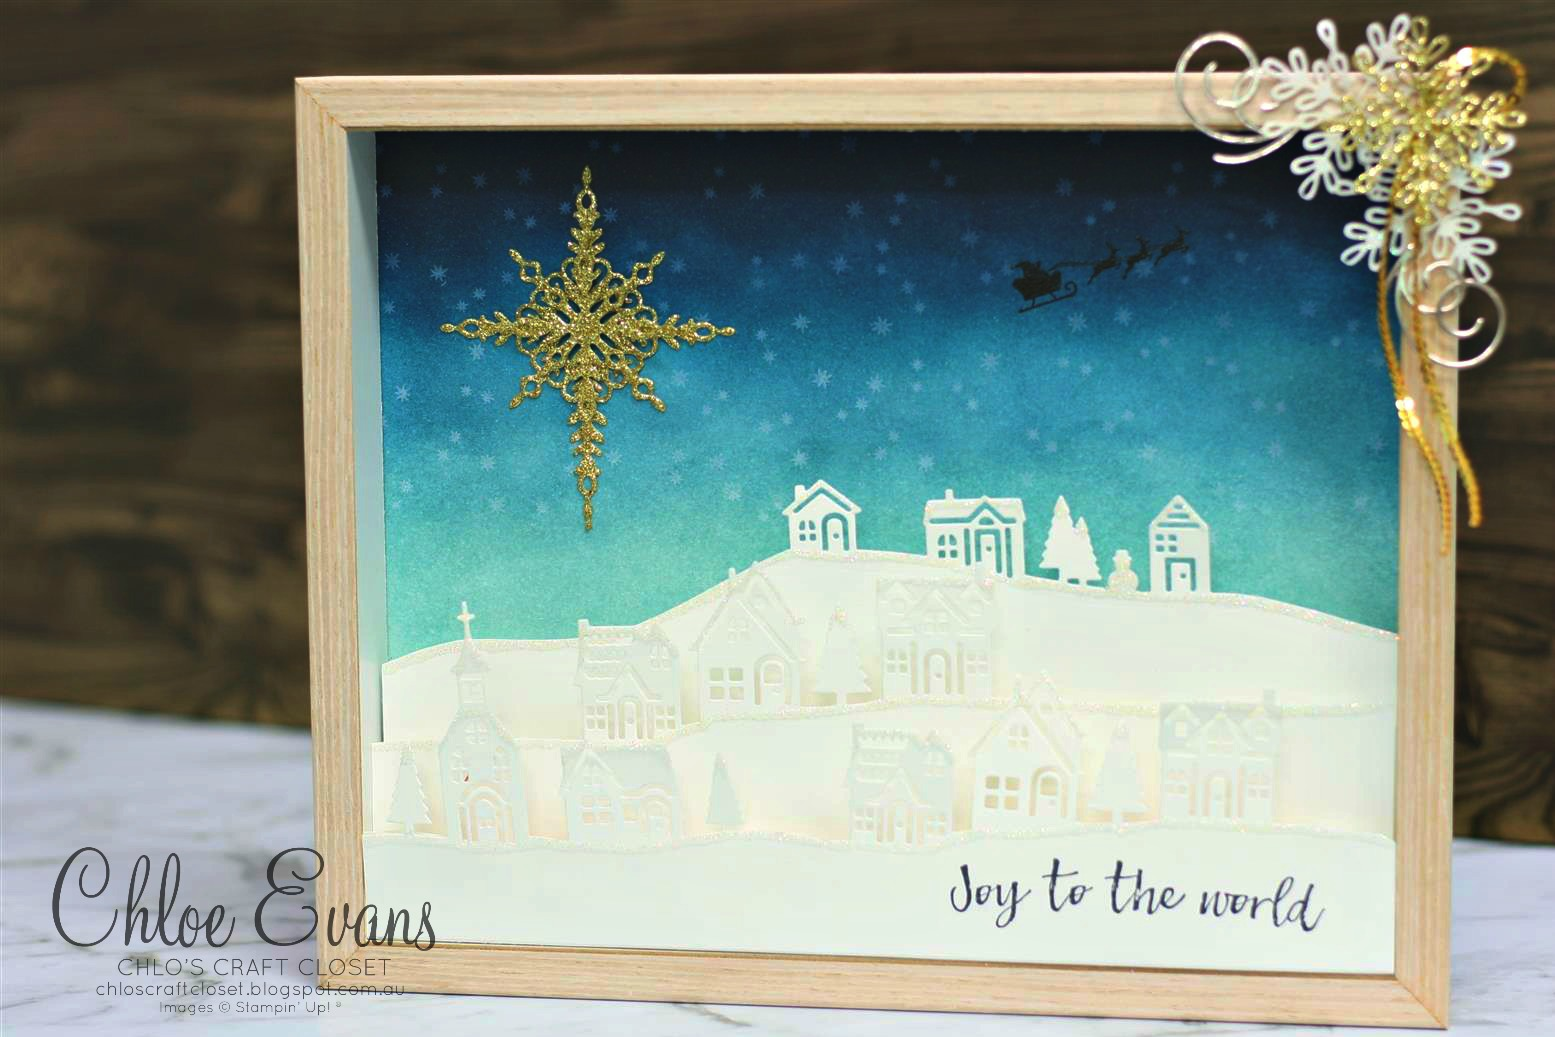 Chlos craft closet stampin up independent demonstrator its like a little winters village on the day before christmas waiting for all the excitement of christmas day but this little scene really becomes magical solutioingenieria Gallery